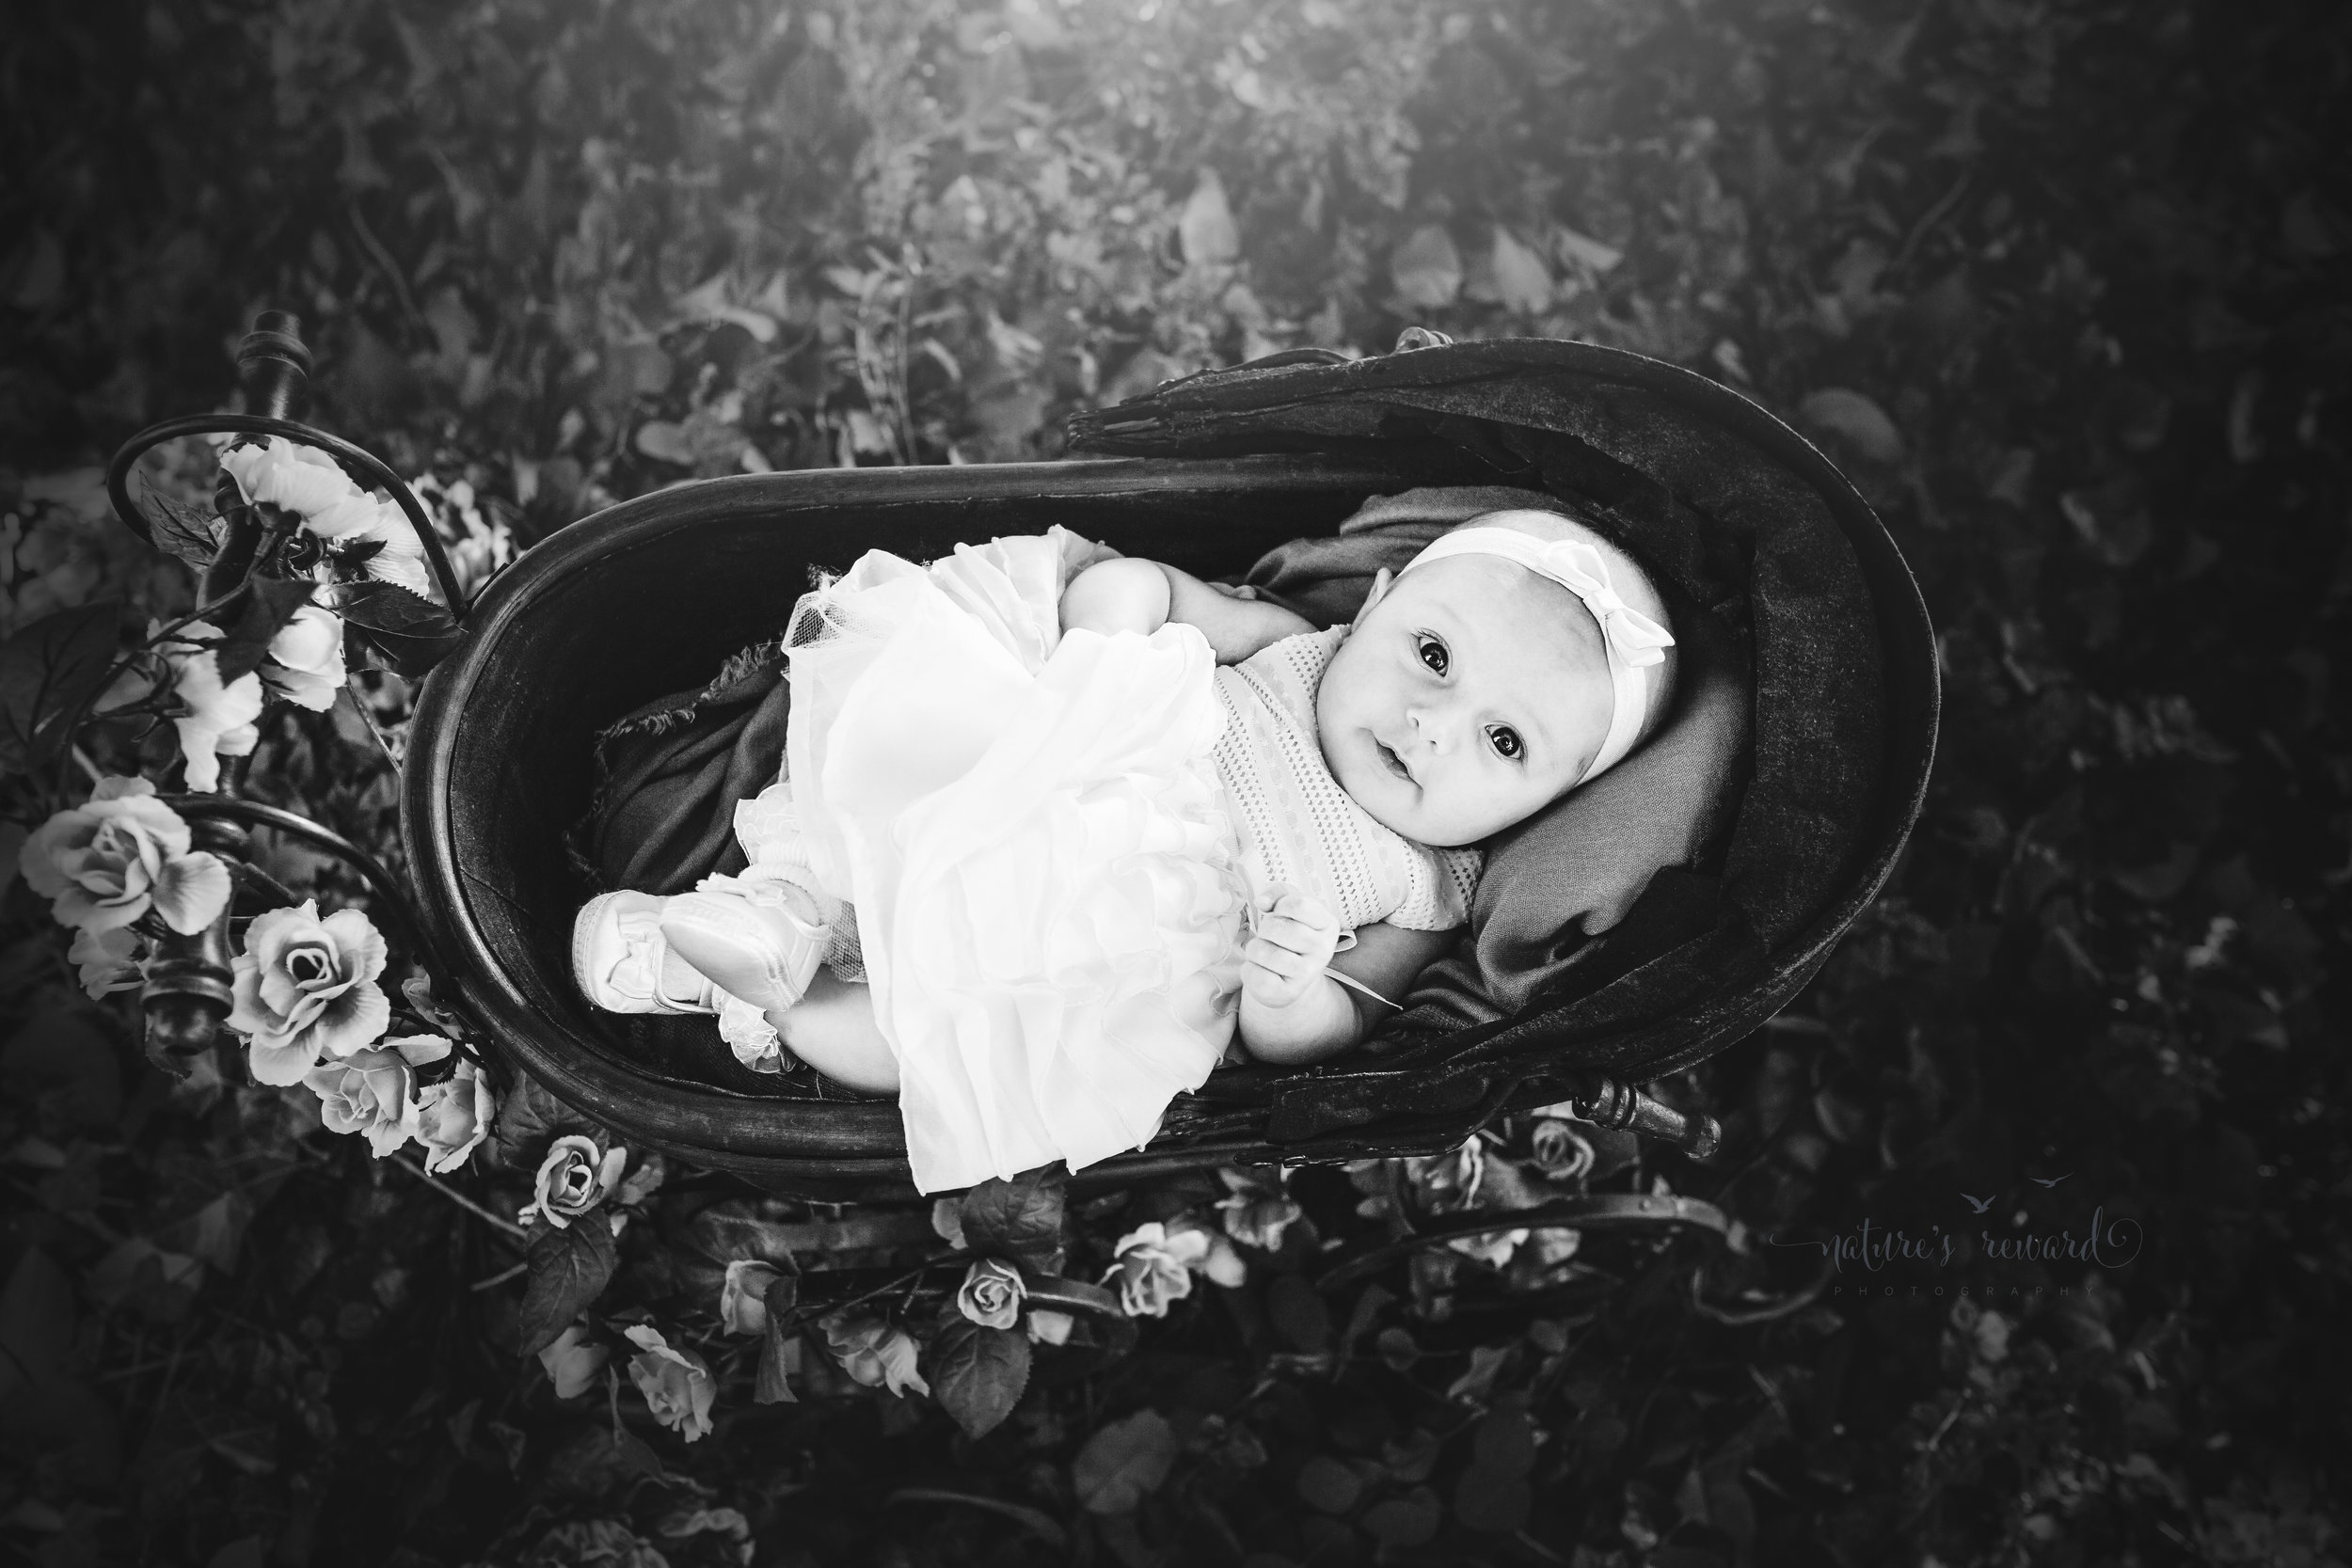 Three (3) month old baby girl in a white dress and pink hair band lays dreamingly in an antique doll carriage in the beautiful in park setting in this black and white portrait by Nature's Reward Photography.